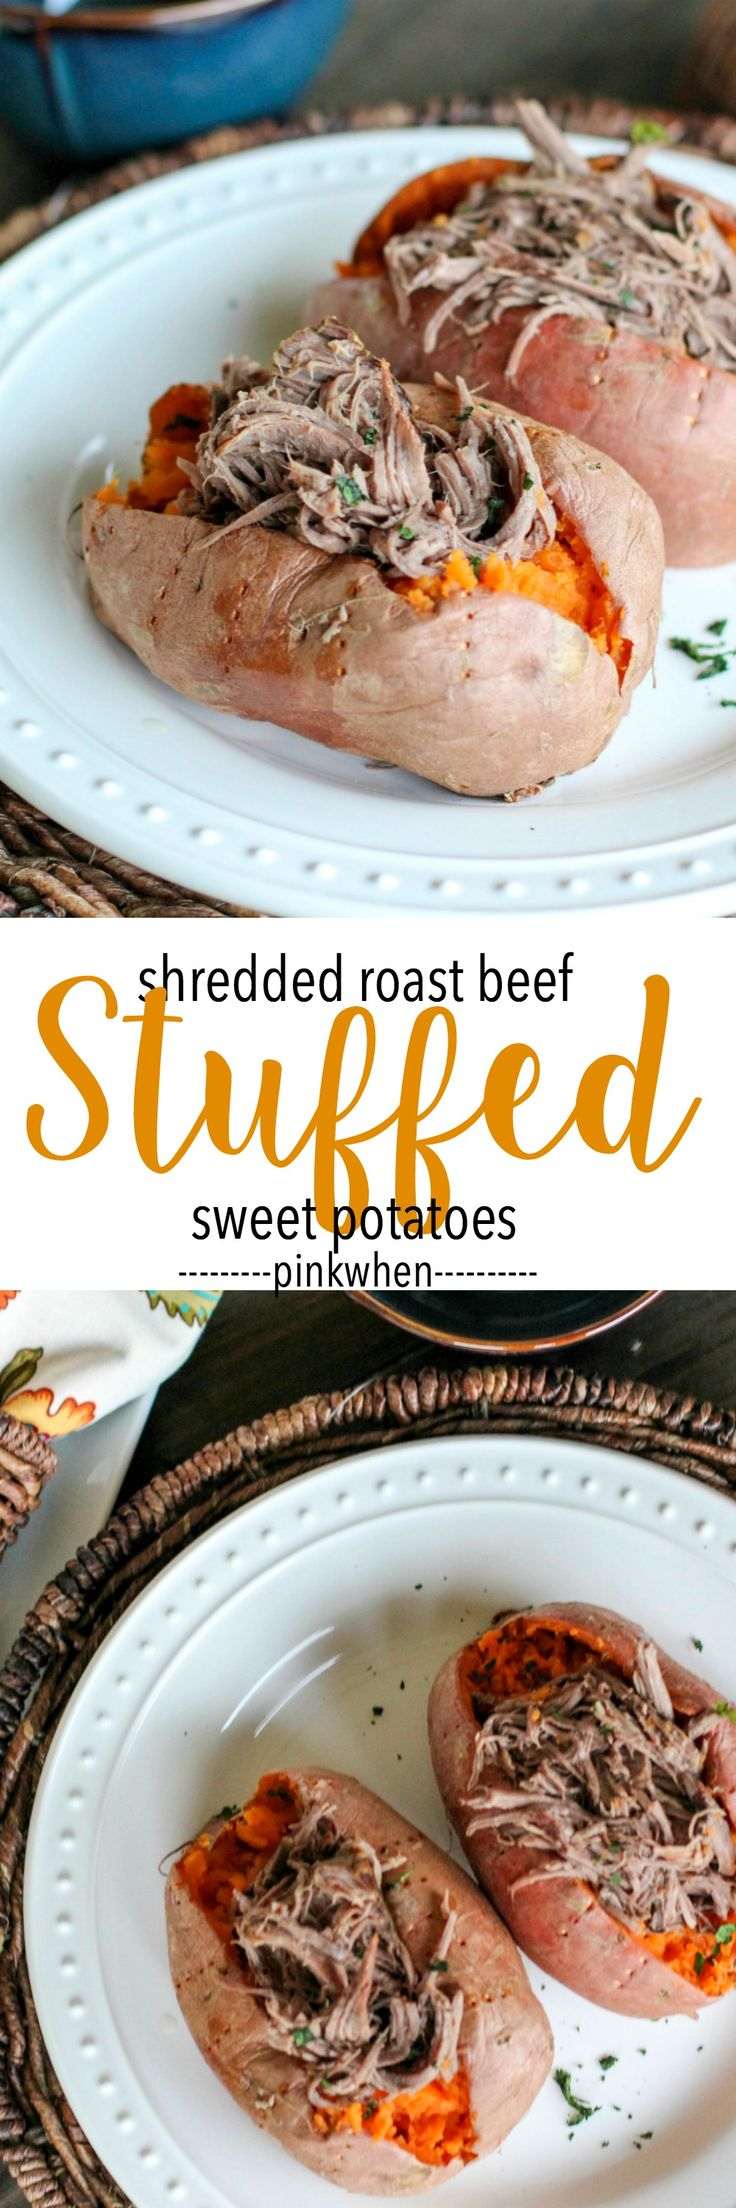 Shredded Roast Beef Stuffed Sweet Potatoes - Whole 30, PALEO, Simple Fit Forty (All dishes from WorldMarket!) #WorldMarketTribe